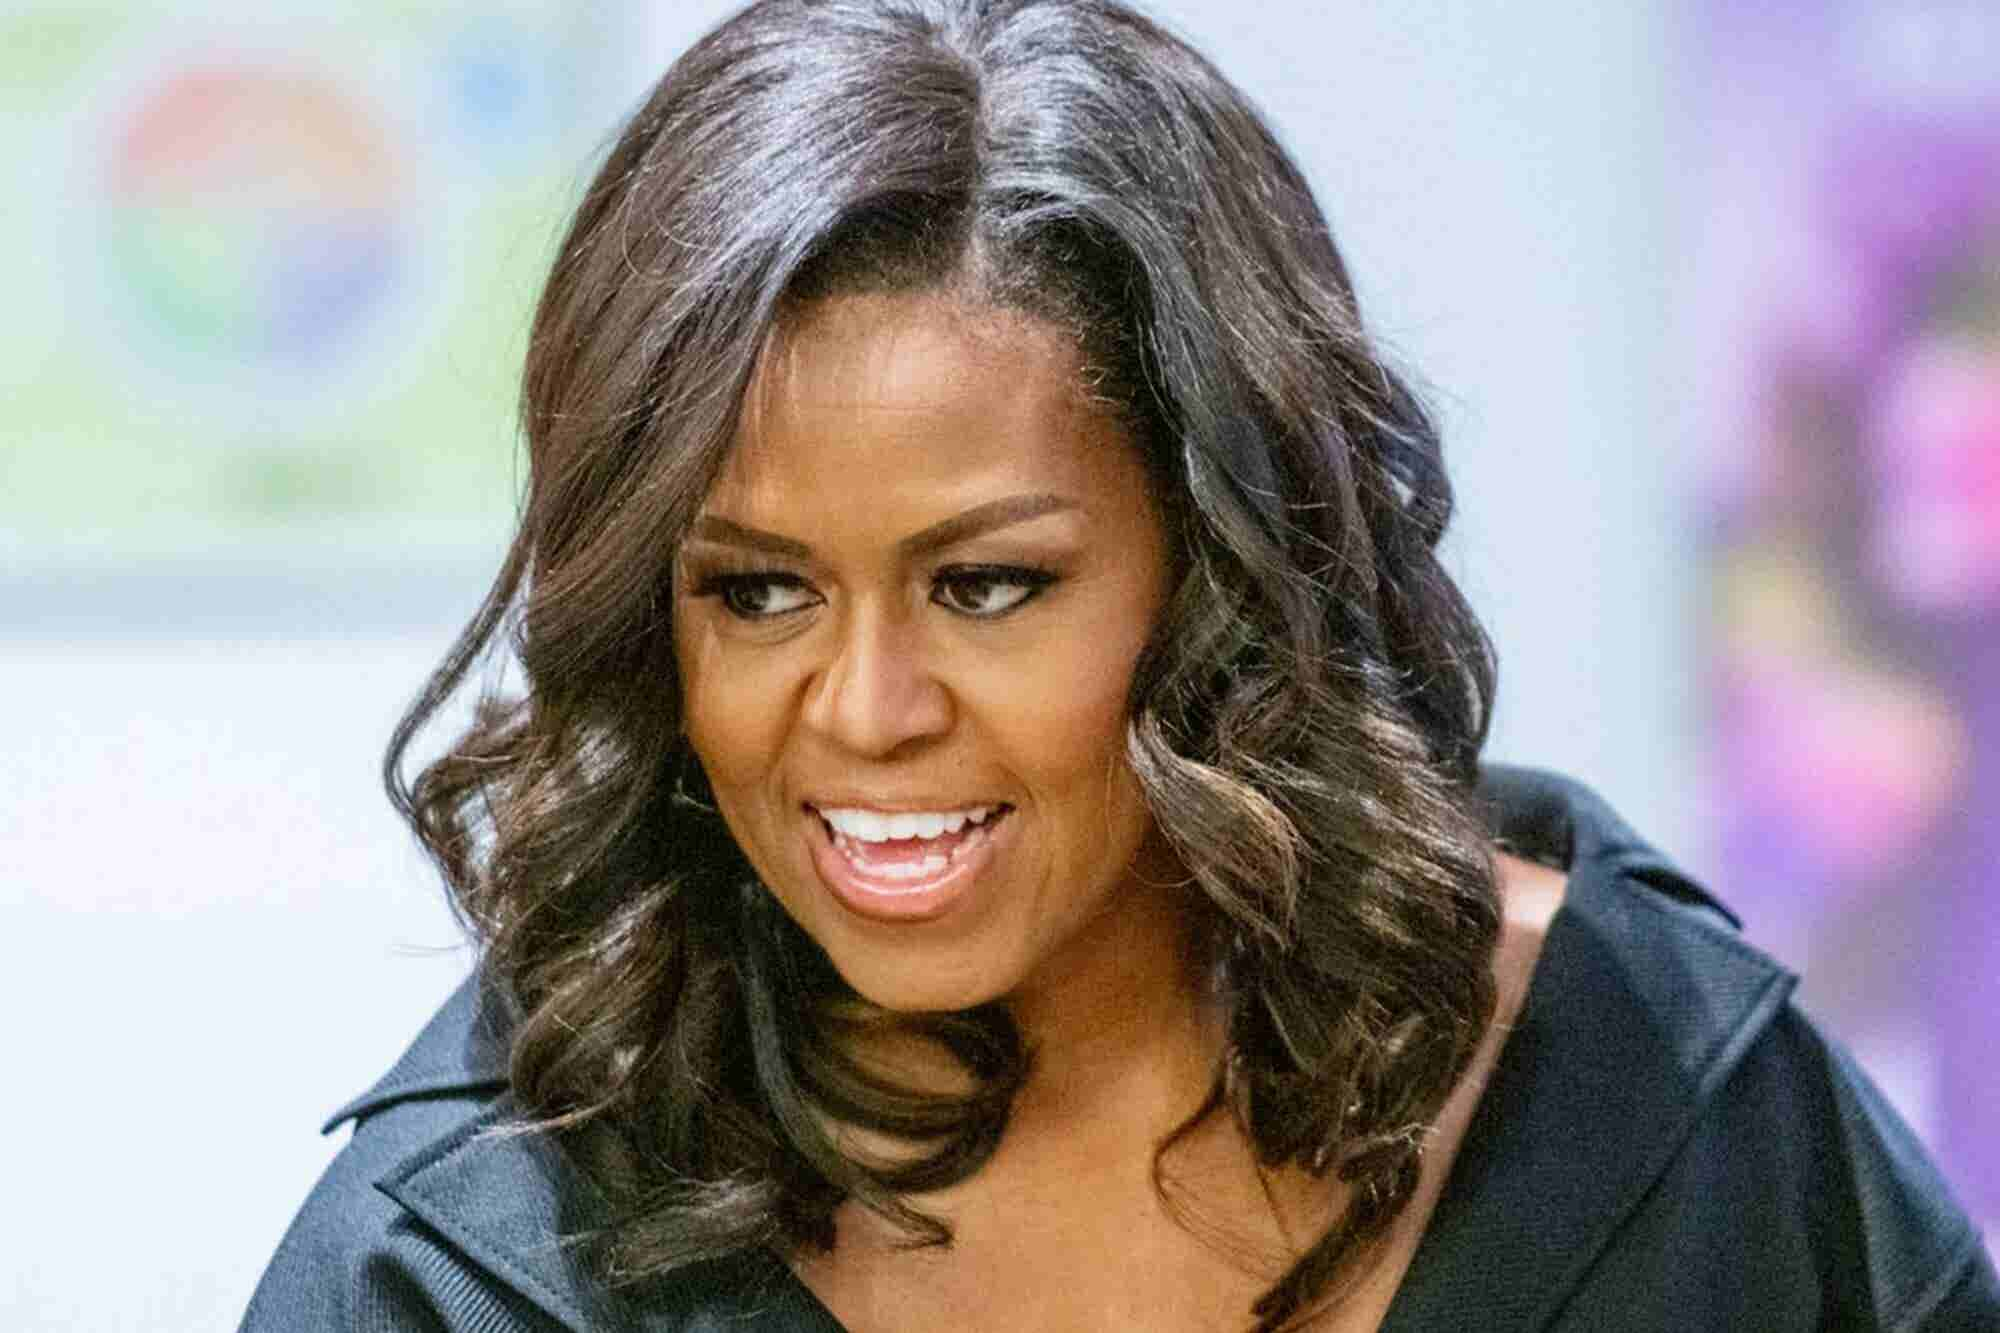 Michelle Obama on Sheryl Sandberg's 'Lean In' Strategy: 'That S--t Doesn't Work All the Time'